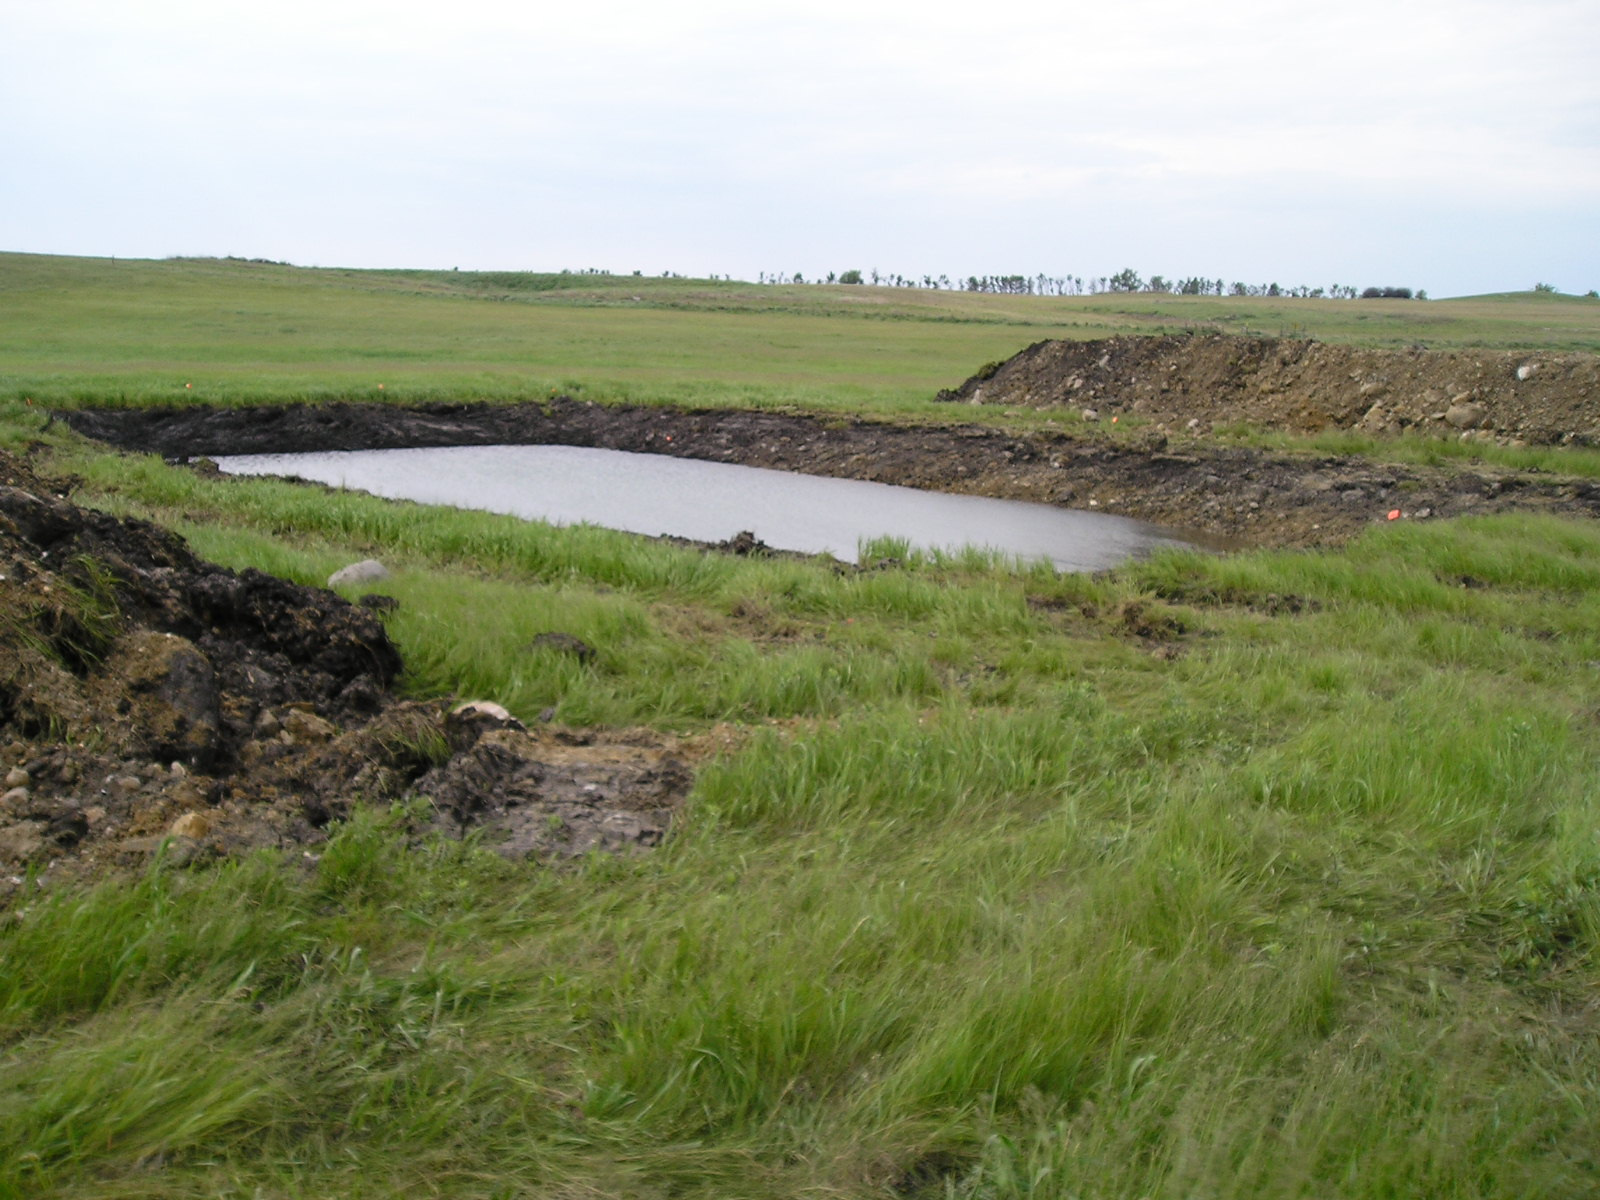 pond to hold water for livestock and wildlife